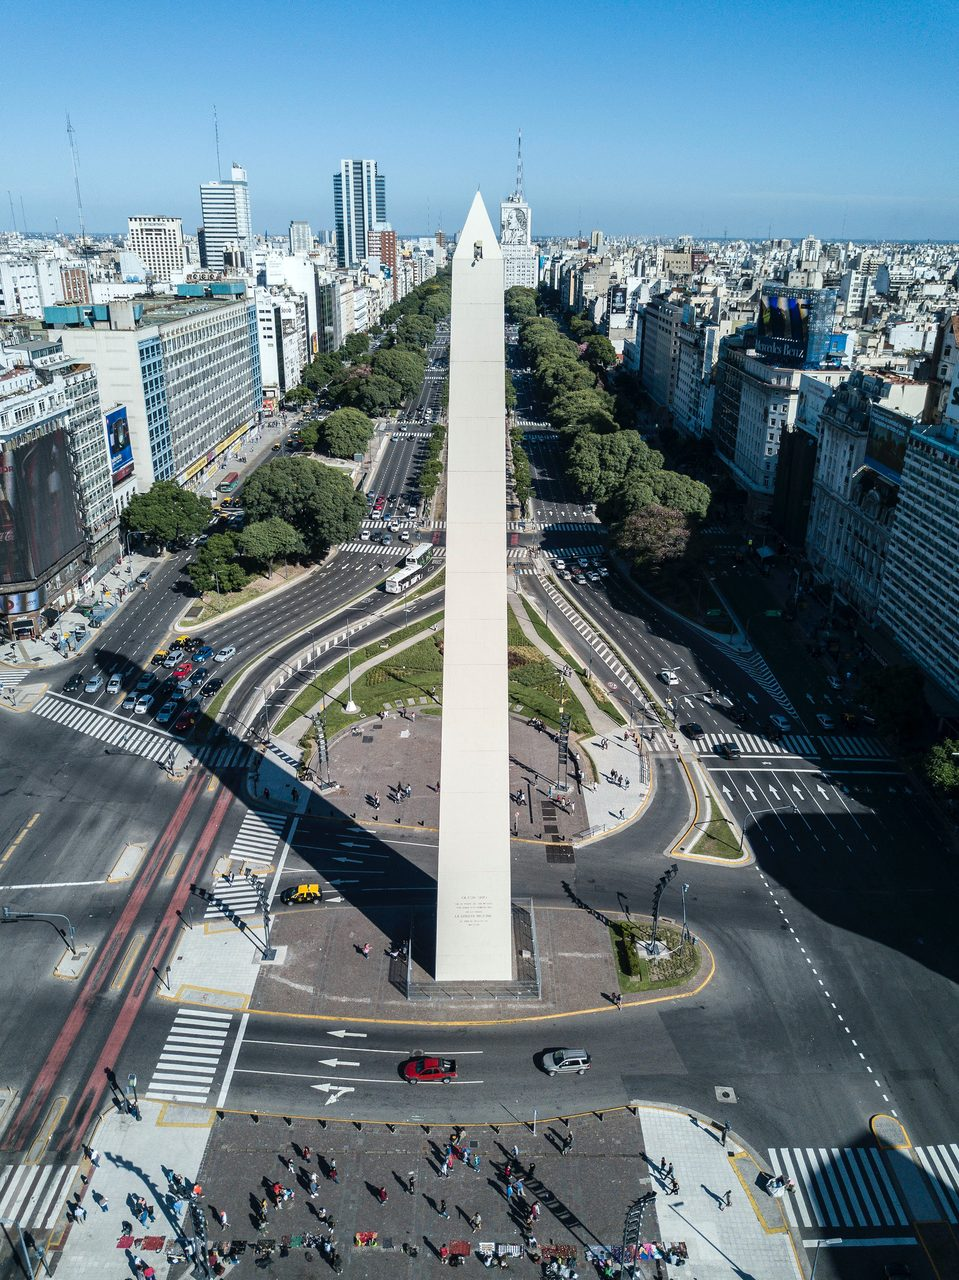 Mode of transport, Urban design, Road surface, Sky, Building, Car, Light, Tower, Infrastructure, Vehicle